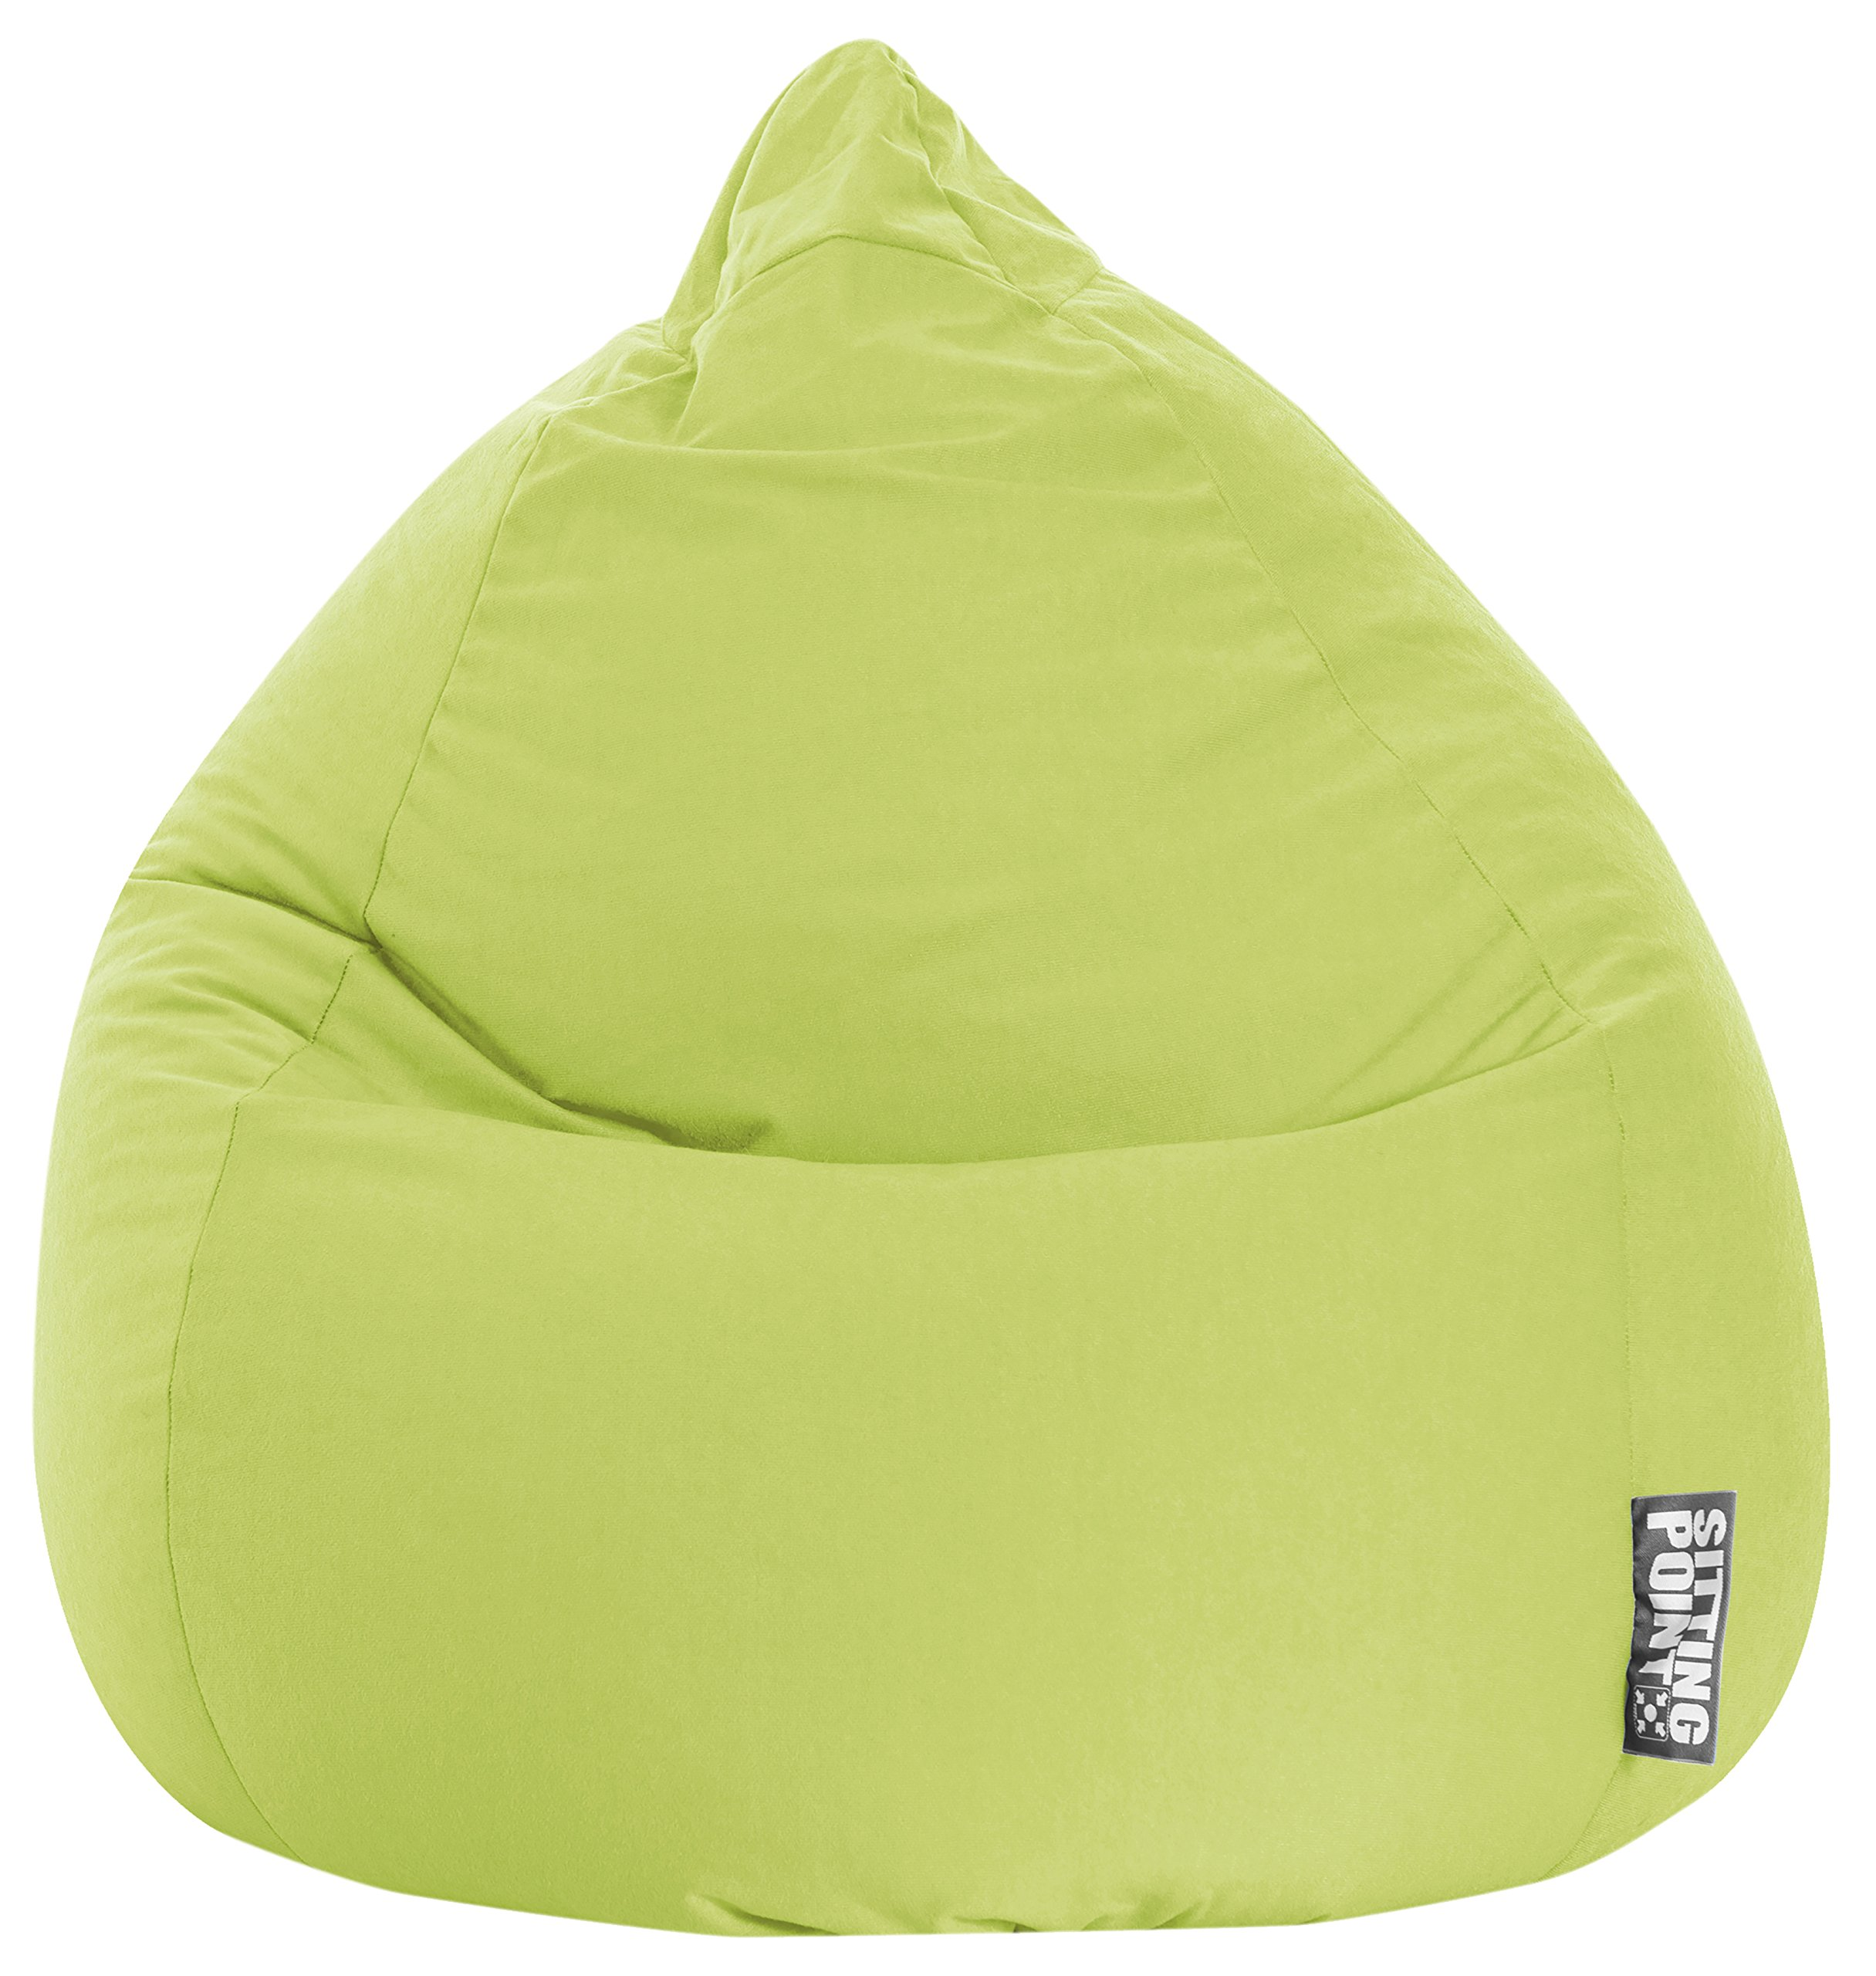 Gouchee Home Easy Collection Contemporary Polyester Upholstered Oversized Bean Bag Chair, Lime Green